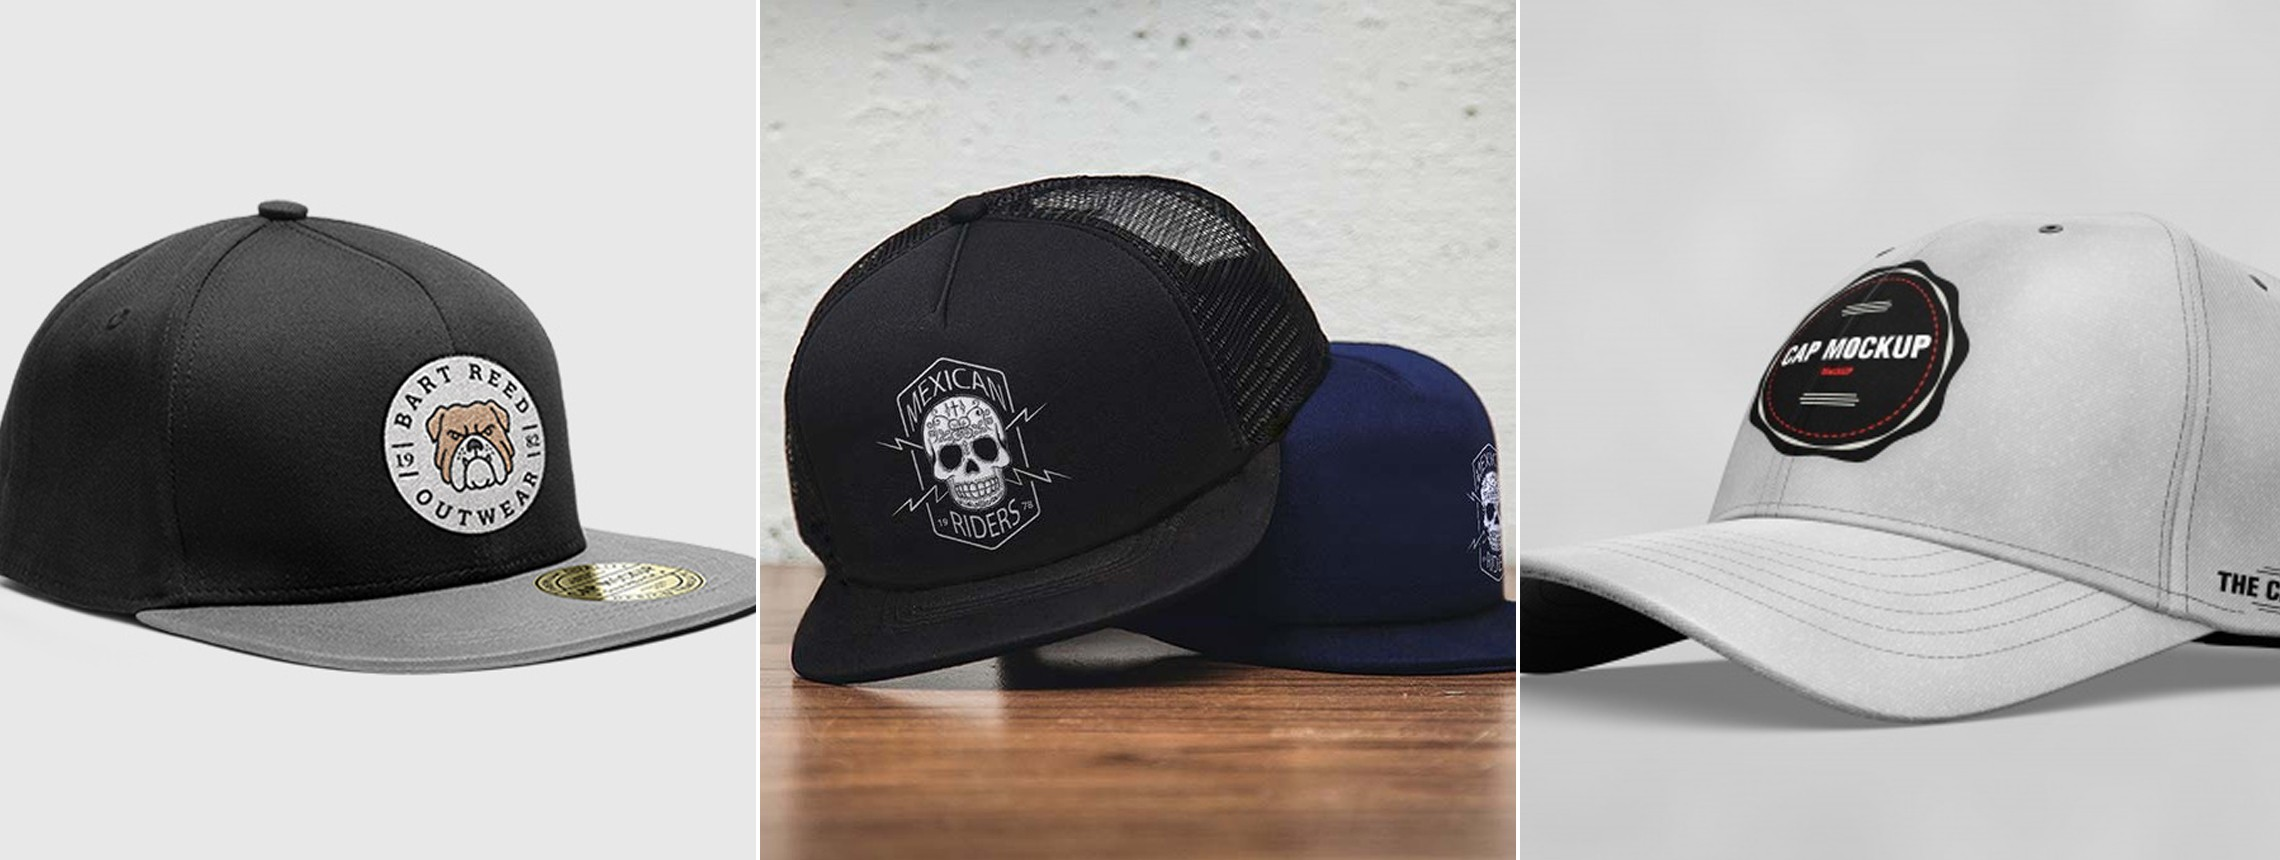 22 Snappy Hat Mockups to Cap Off Your Design